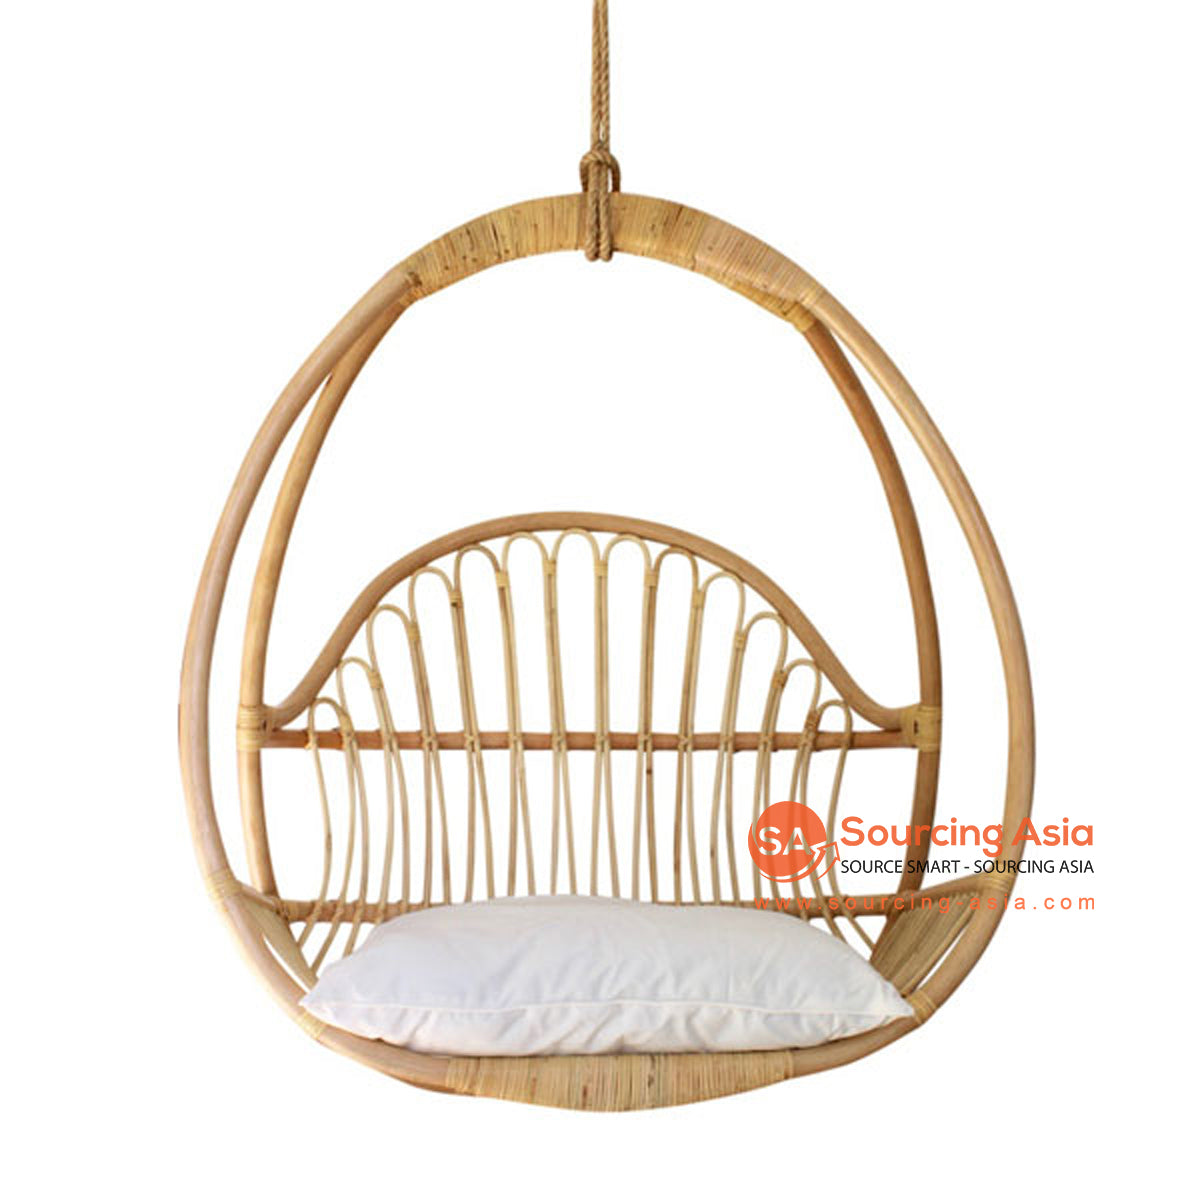 SHL175-2 NATURAL RATTAN HANGING CHAIR